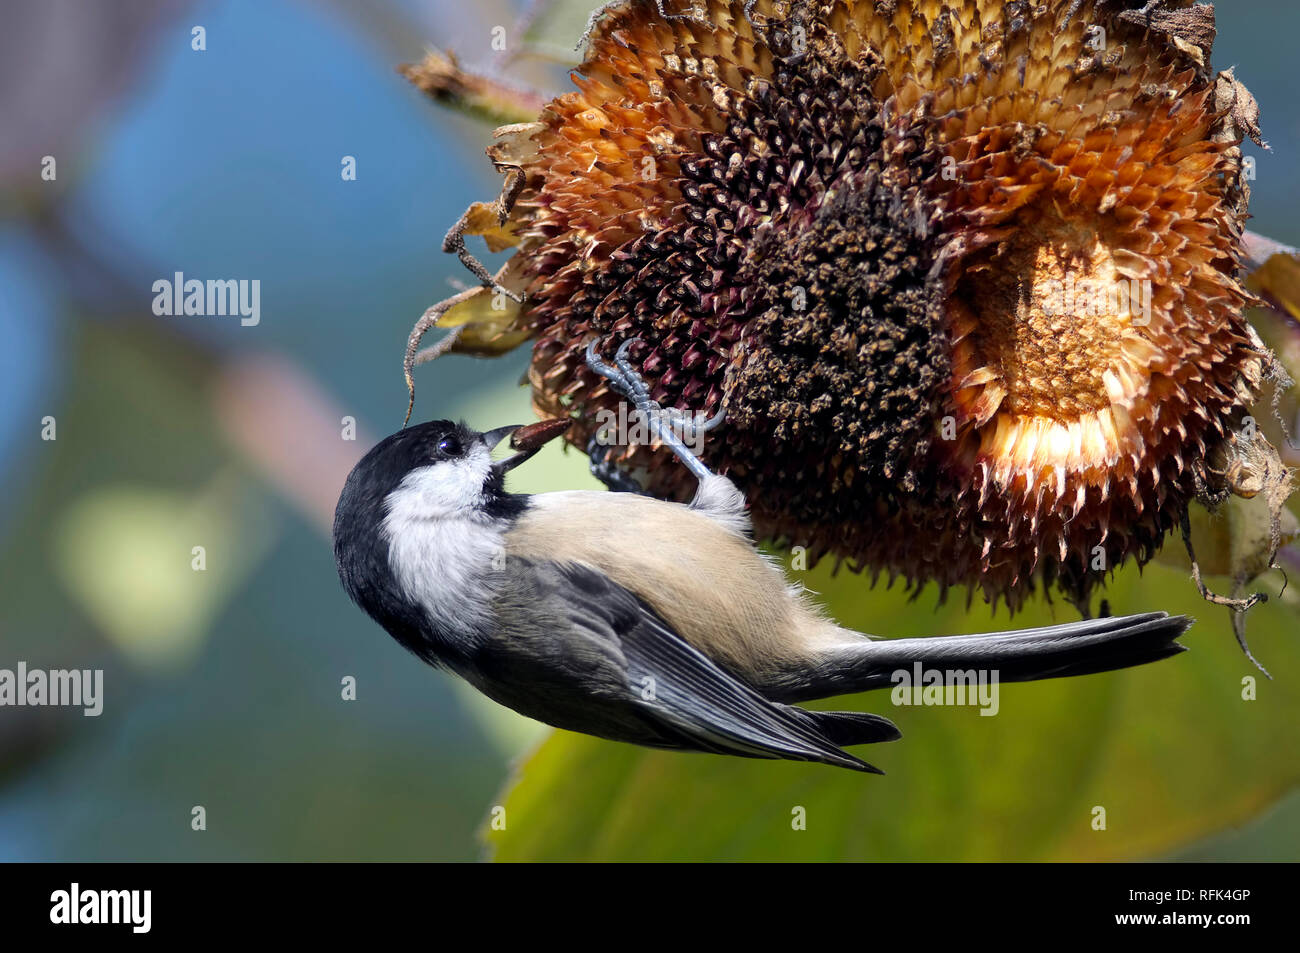 A Black-capped Chickadee (Poecile atricapillus) retrieving a sunflower seed from the head of a sunflower. Stock Photo